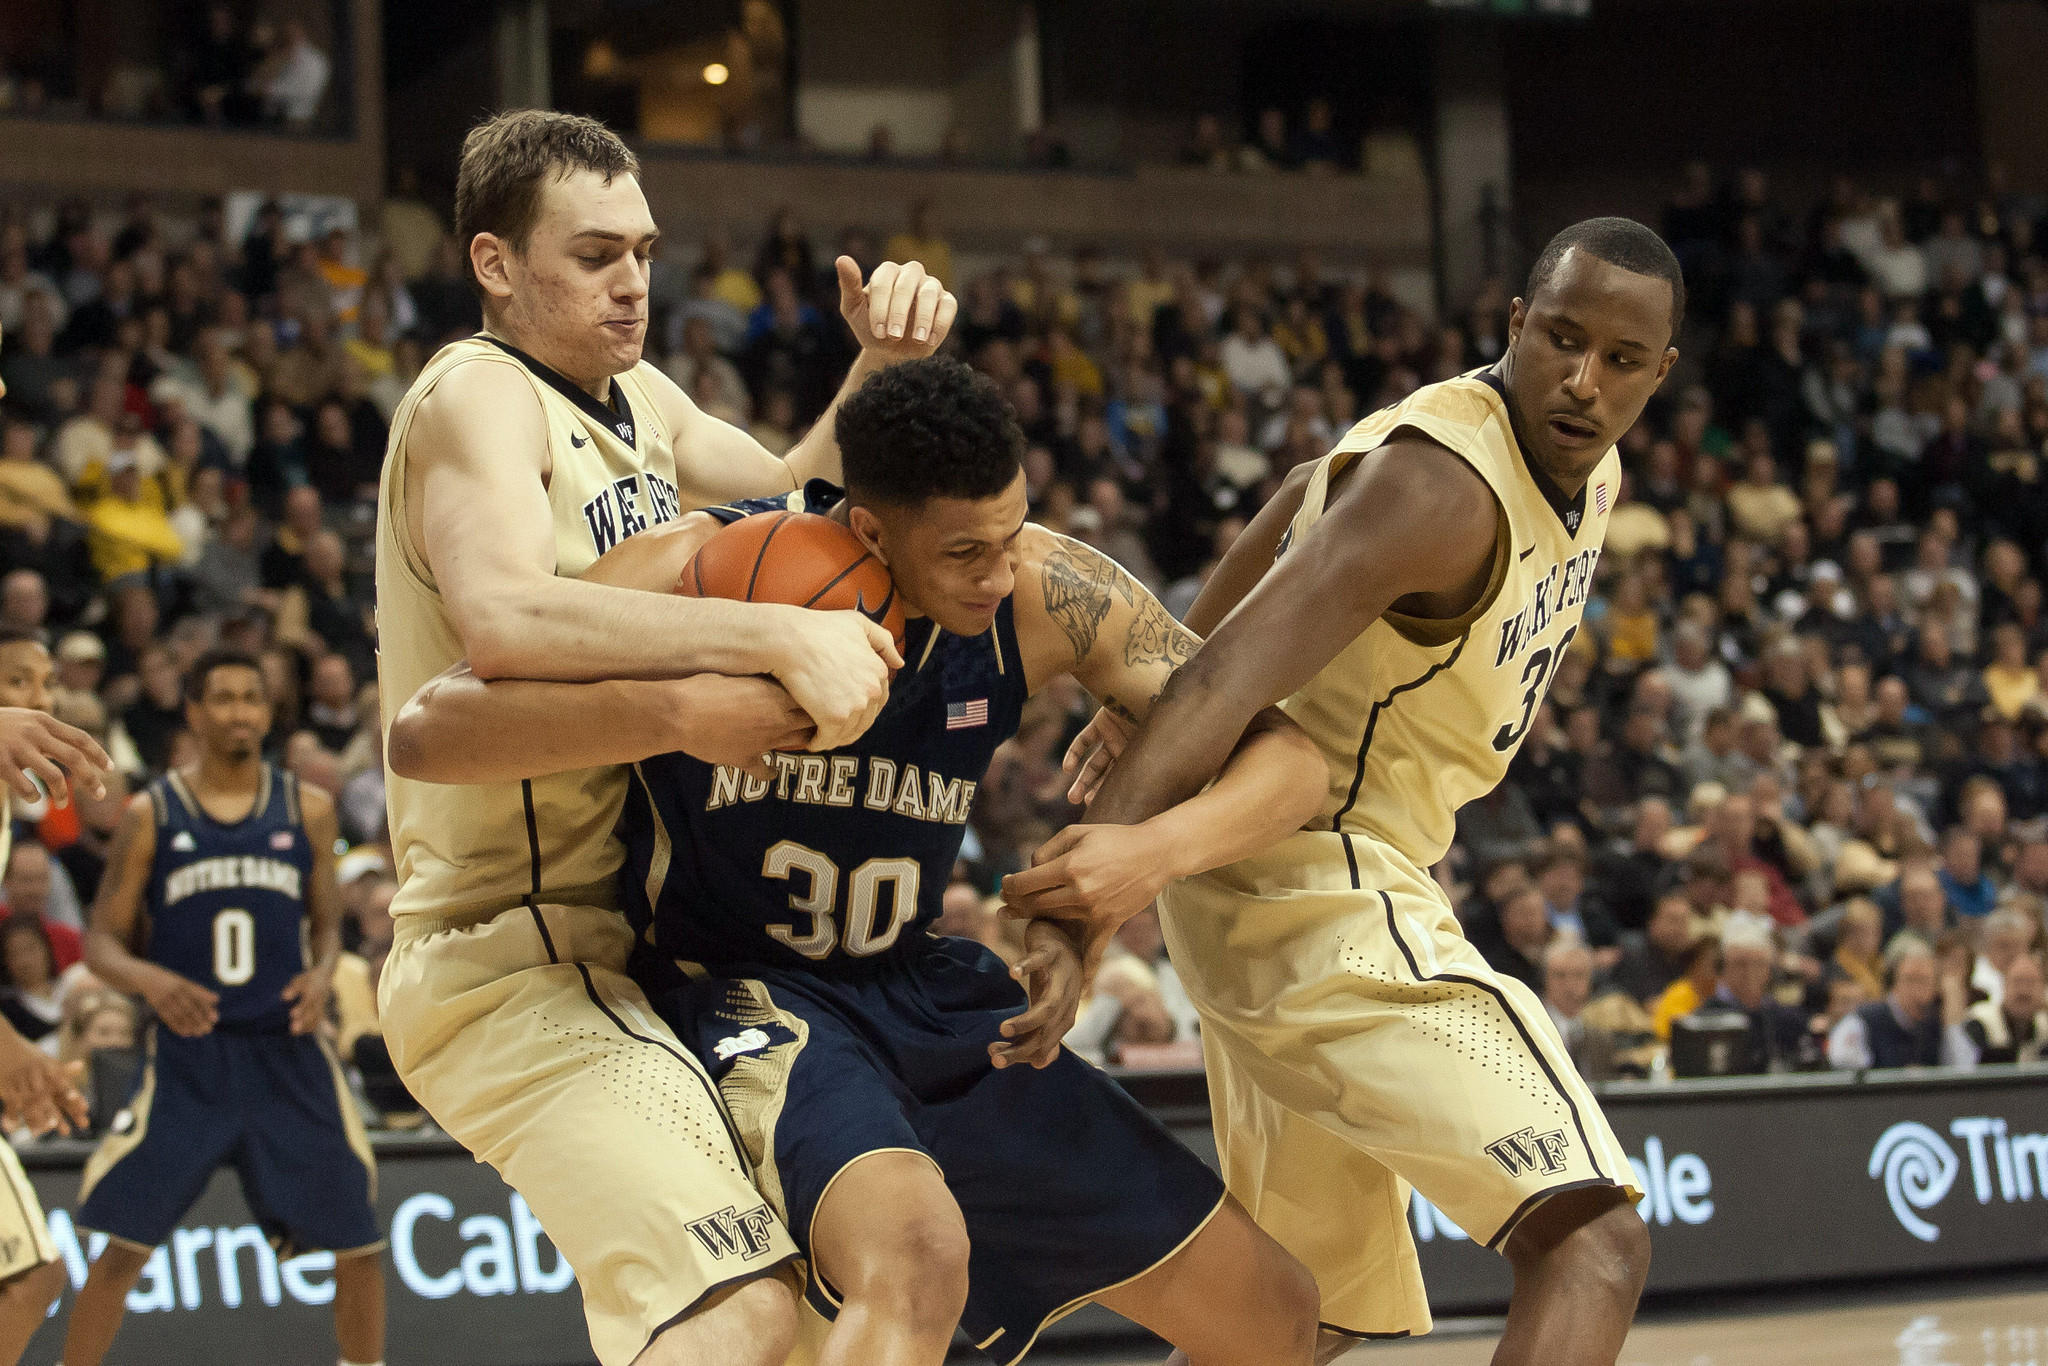 Notre Dame forward Zach Auguste (30) fights for a ball between Wake Forest forward Tyler Cavanaugh (34) and forward Travis McKie (30) during the second half.